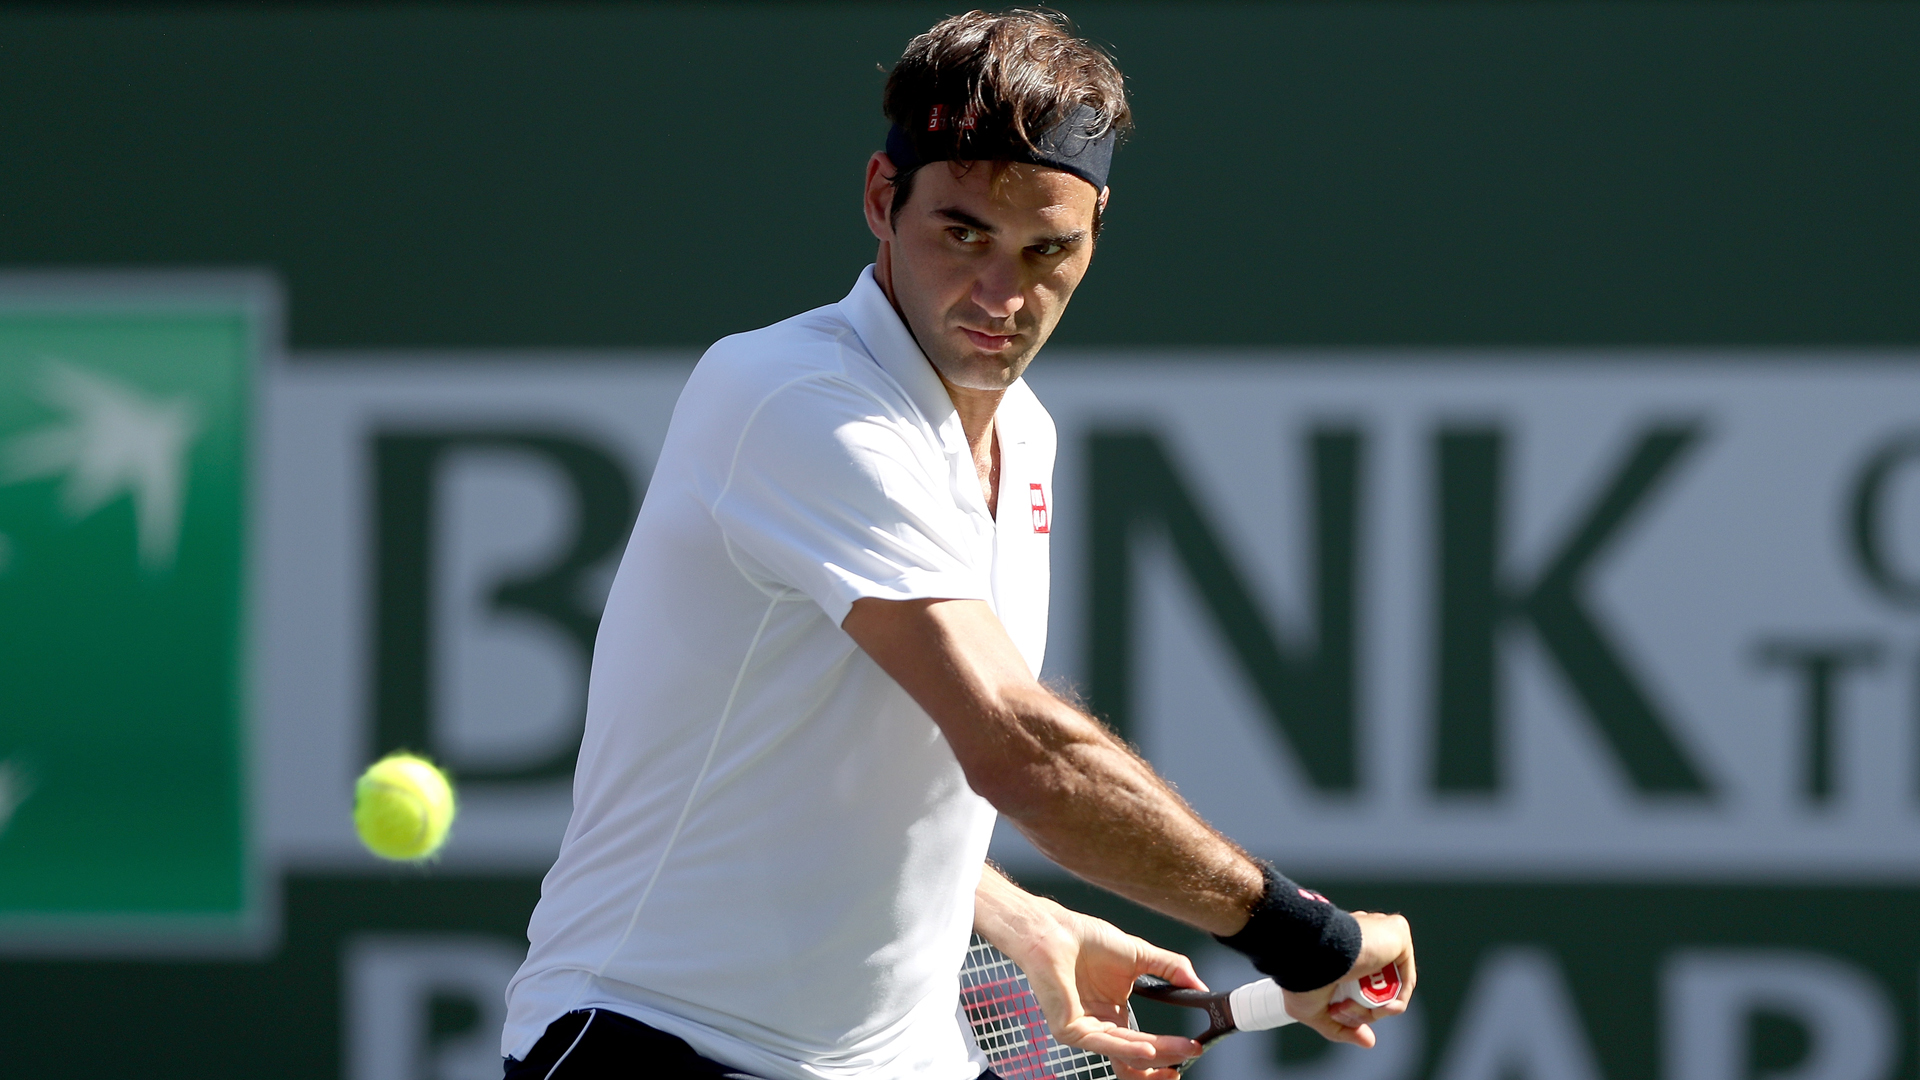 Untroubled at the Indian Wells Masters, Roger Federer and Rafael Nadal are on track for a 39th meeting.